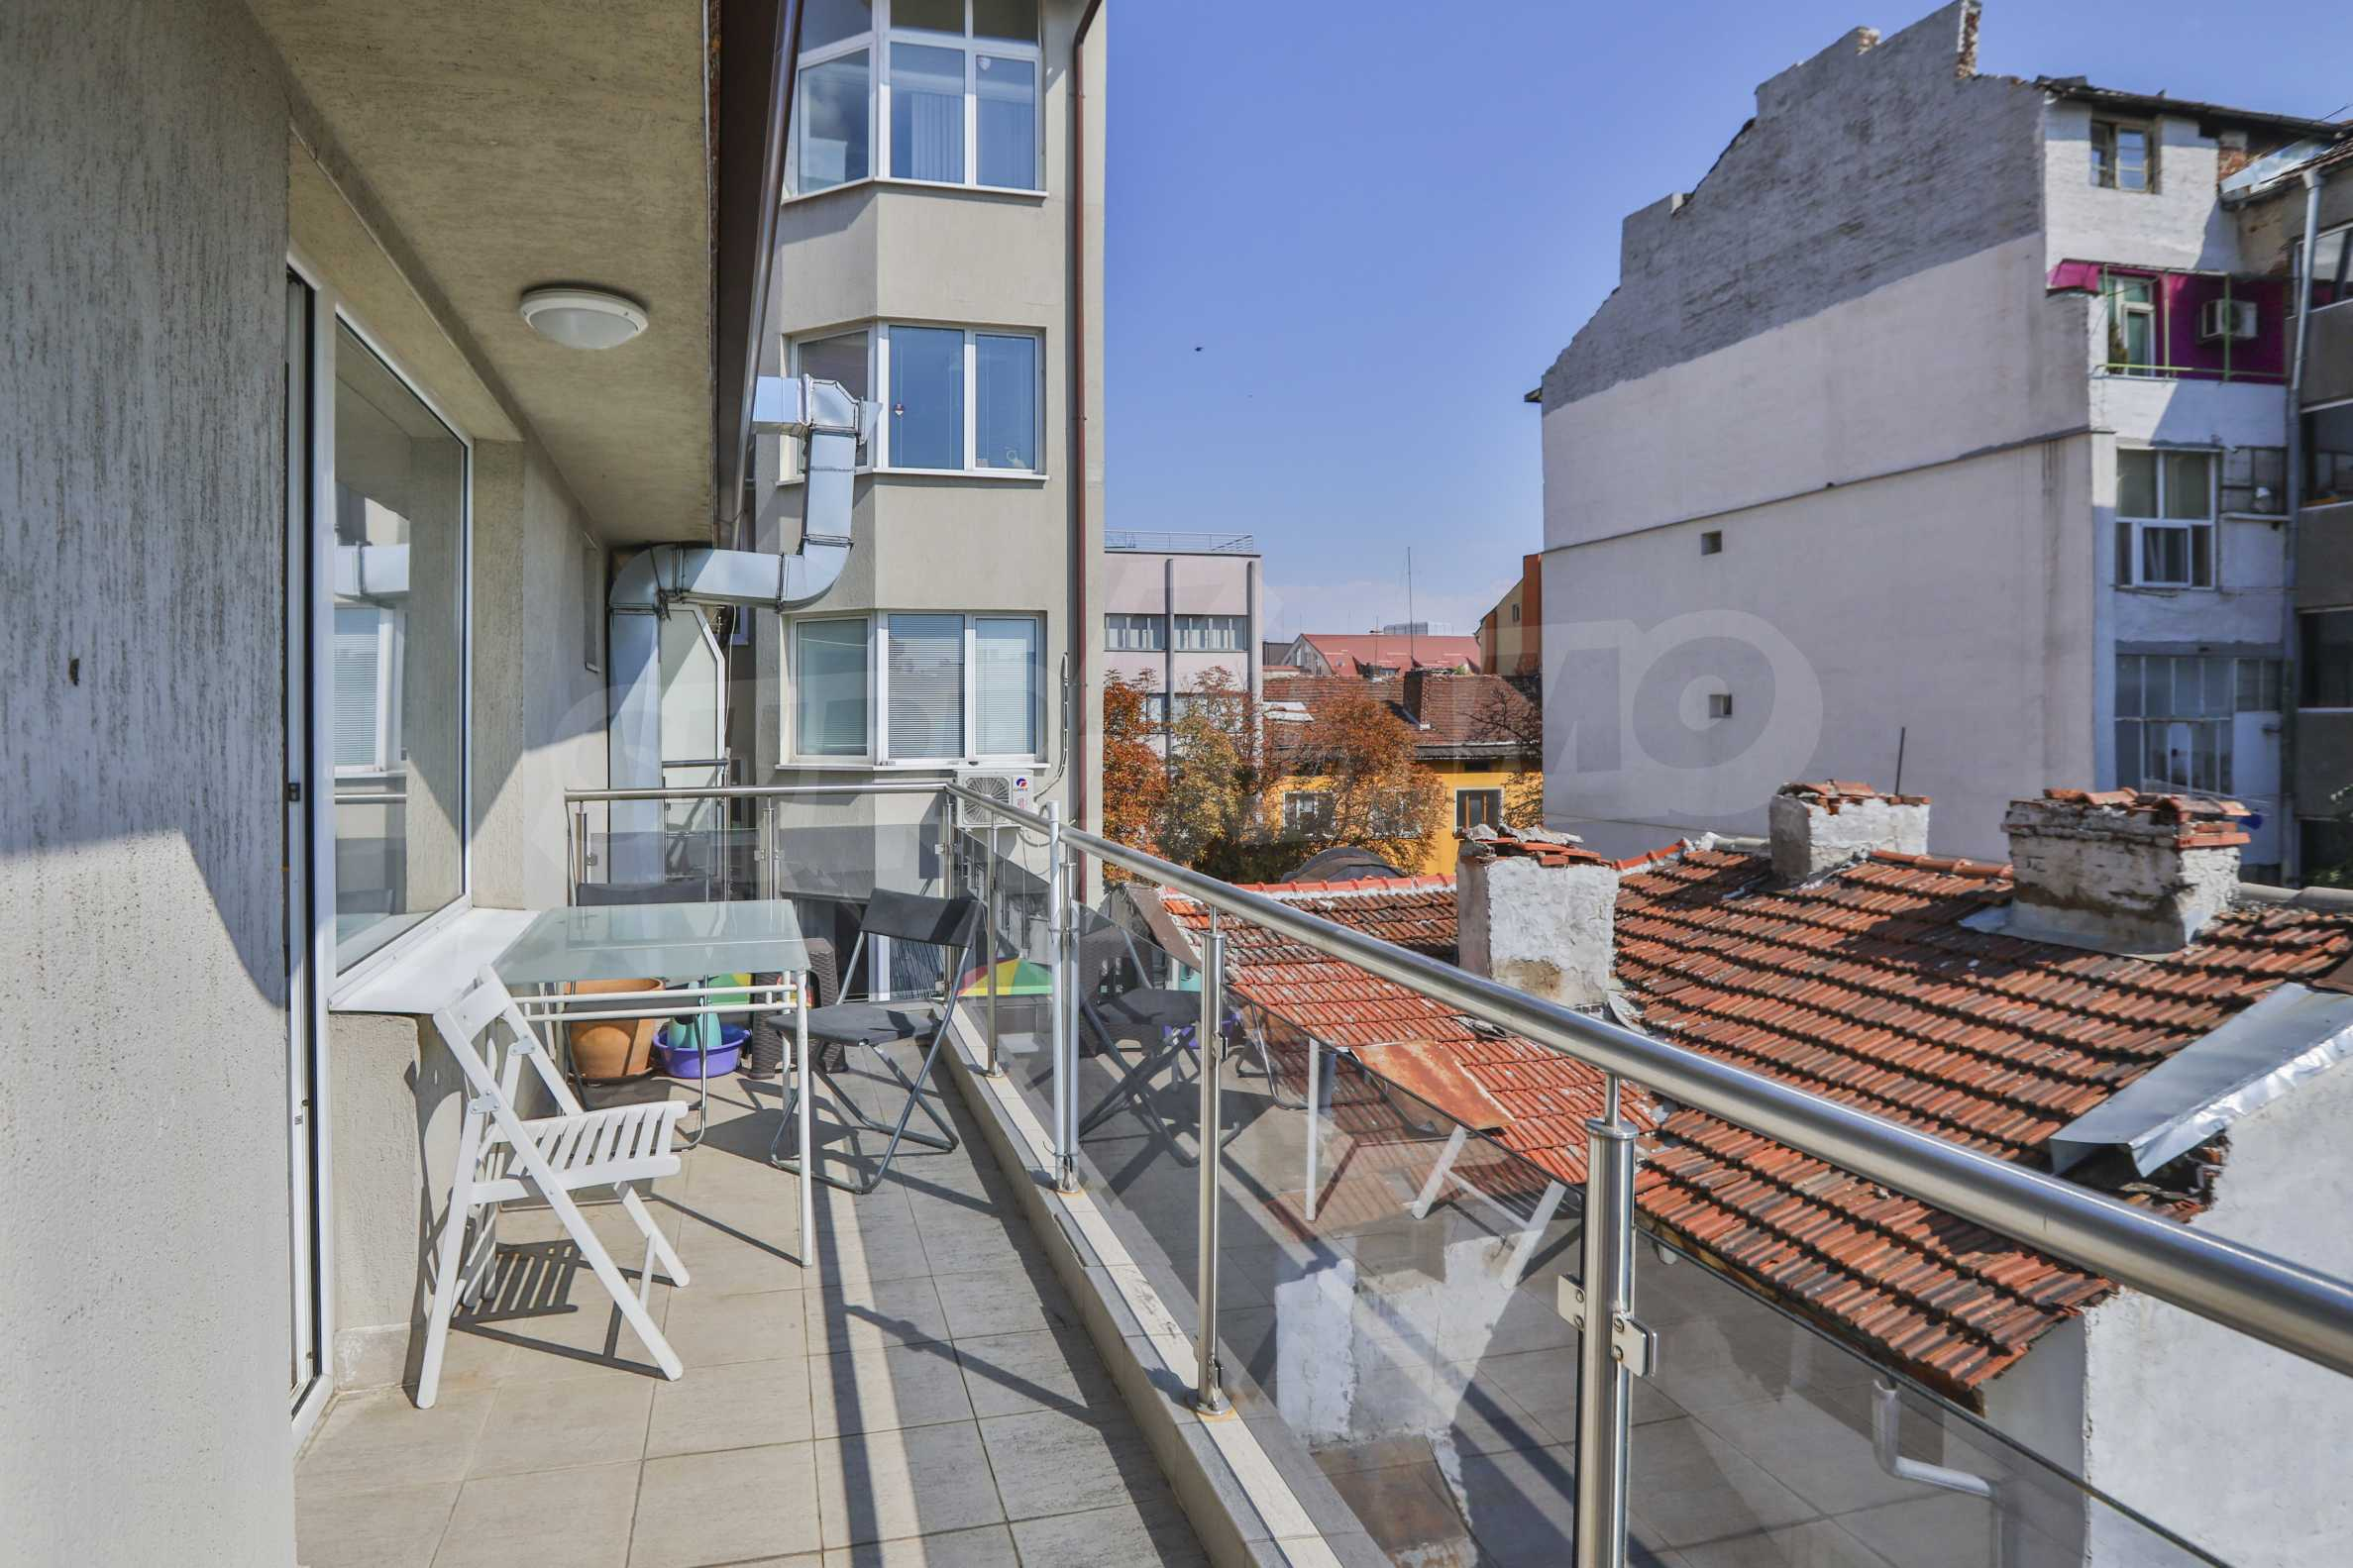 Two-bedroom apartment in the center with high rating on Airbnb 9